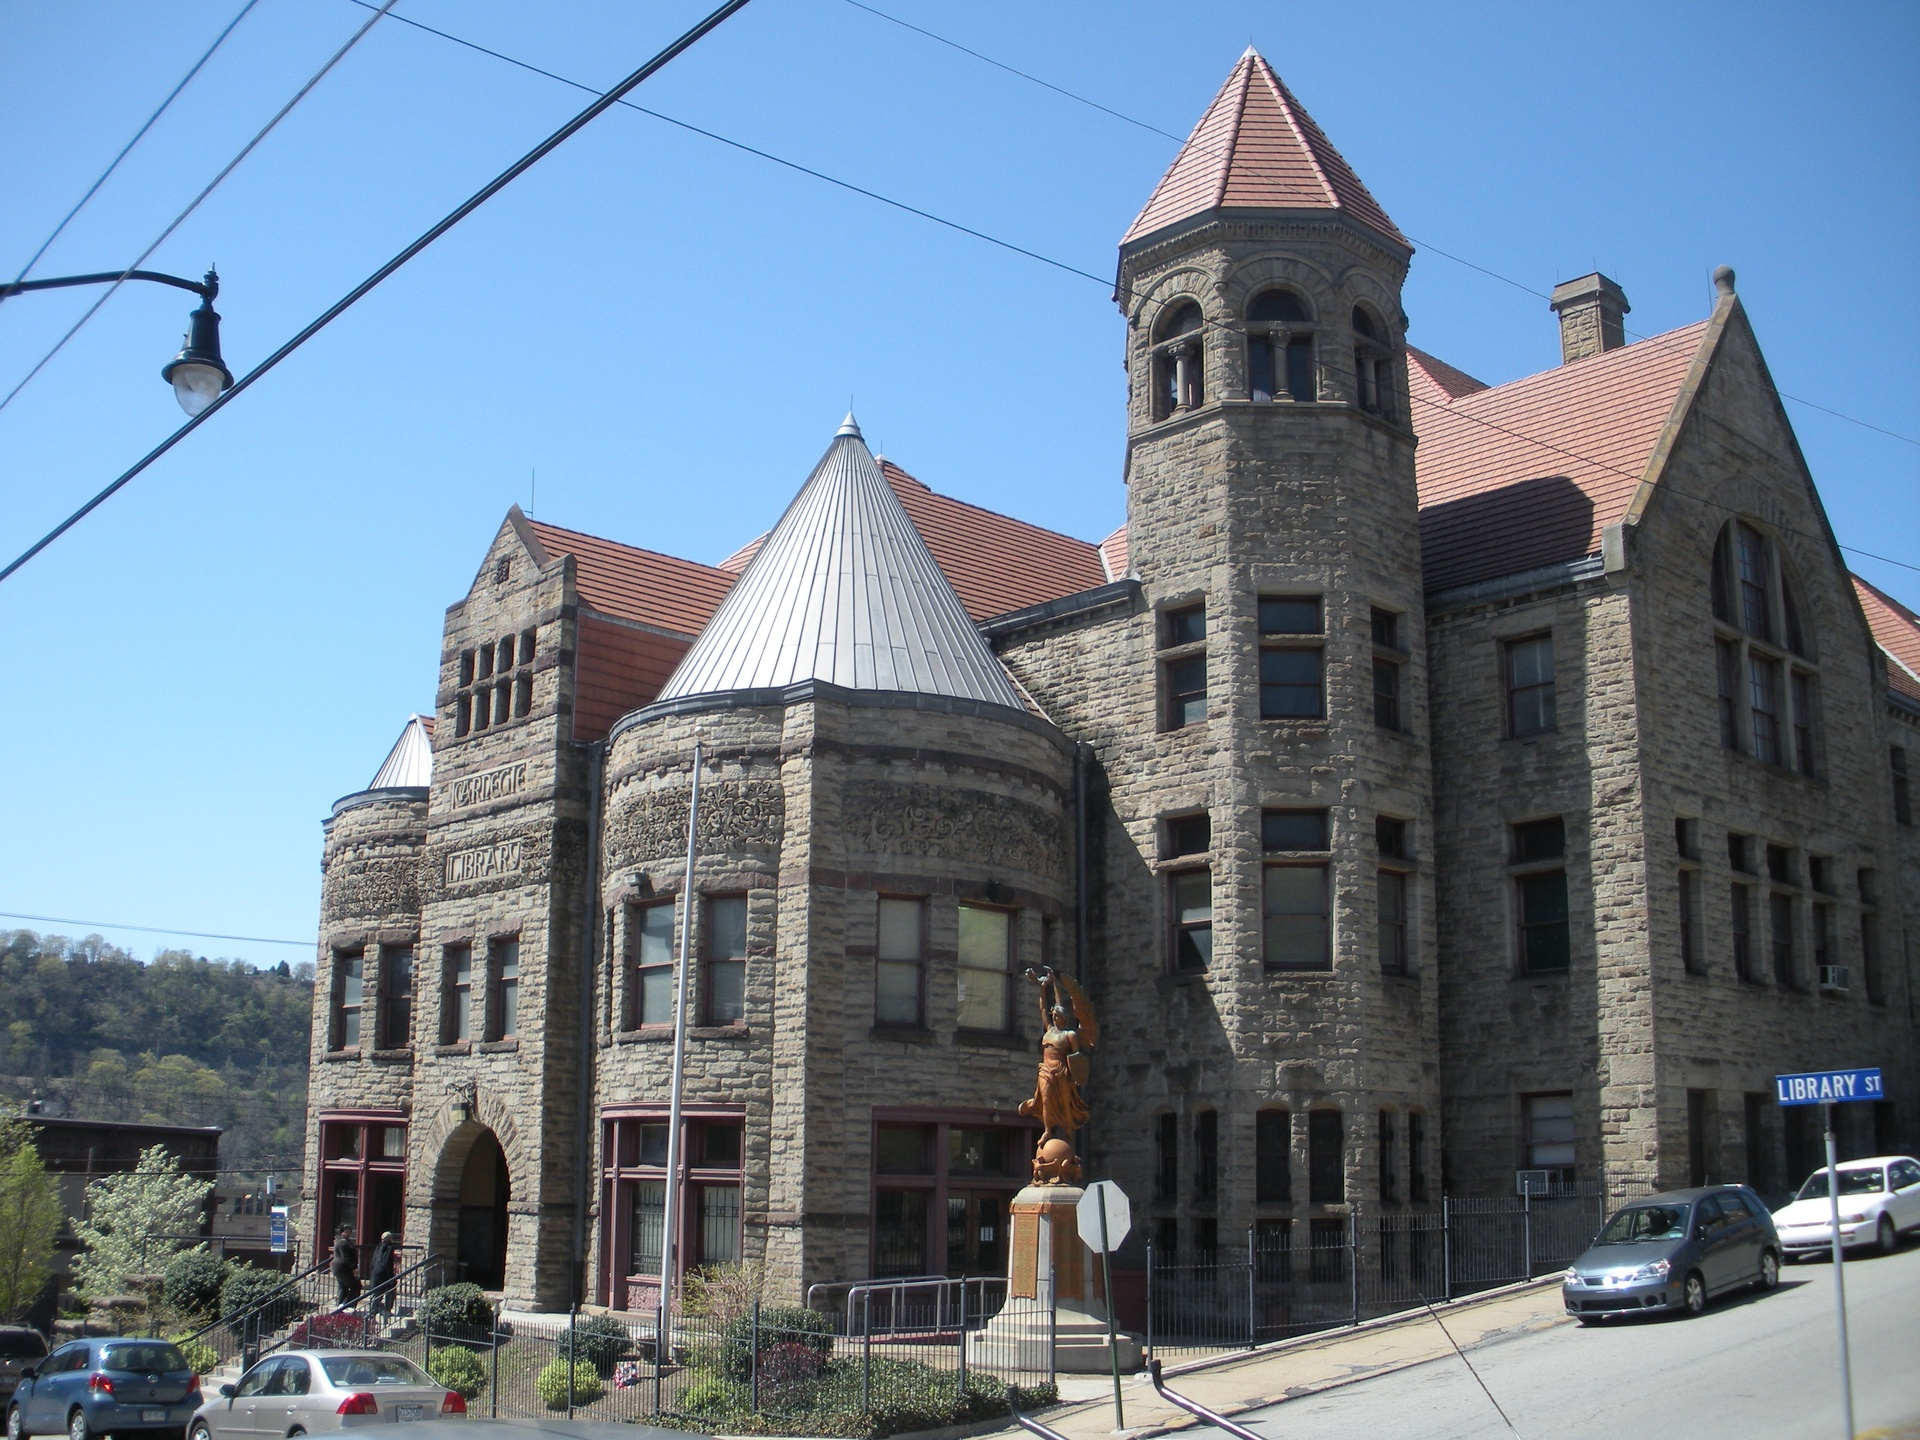 The Braddock Carnegie Library